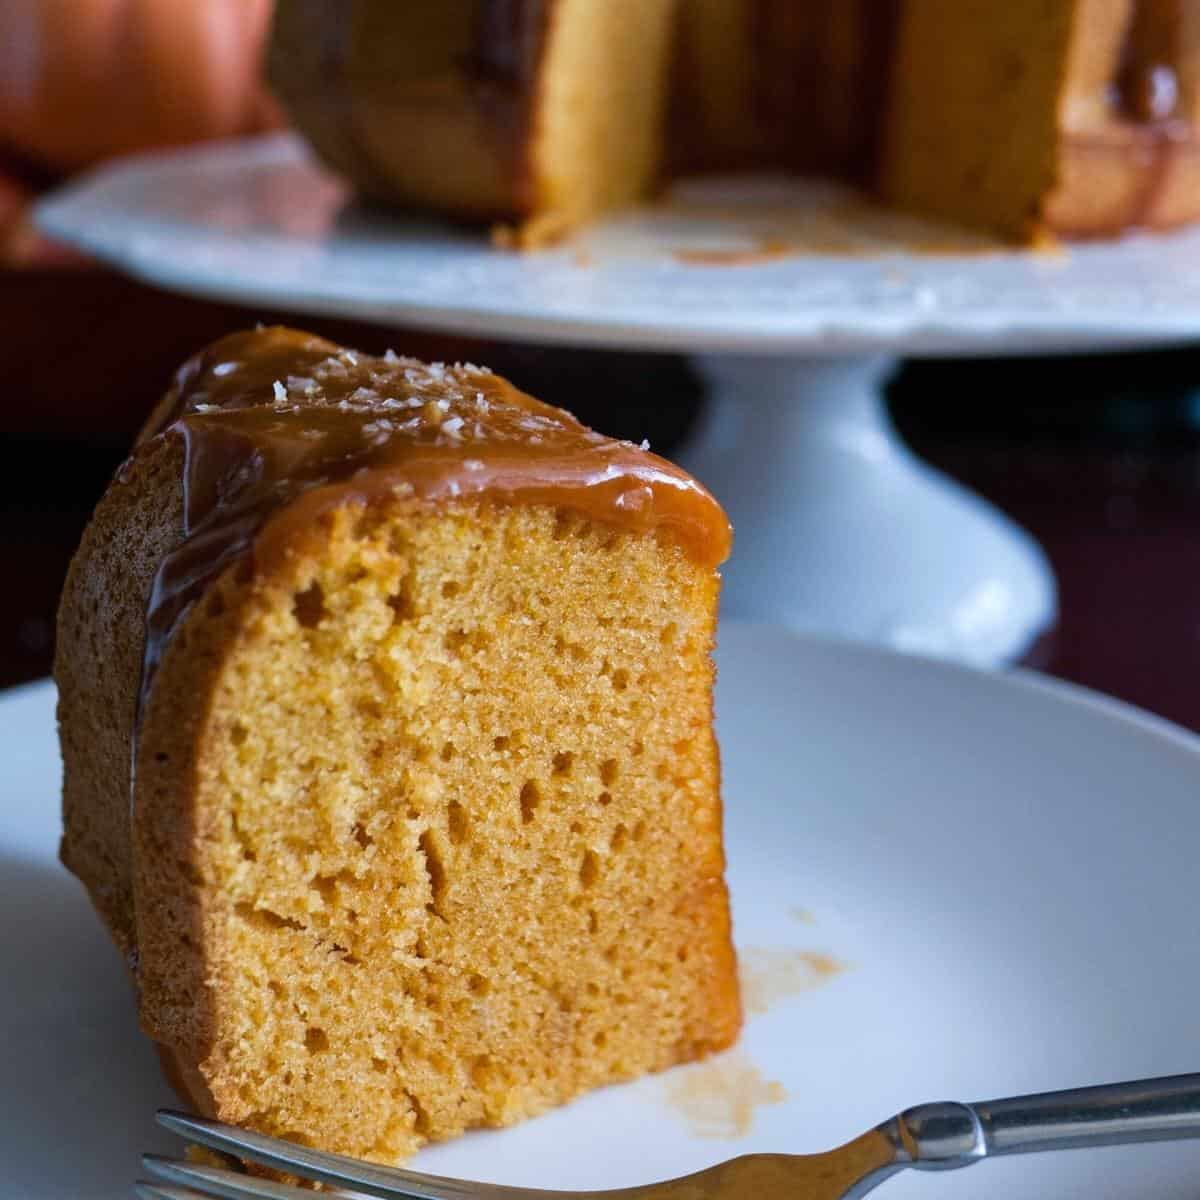 A slice of pumpkin bundt cake on a plate.